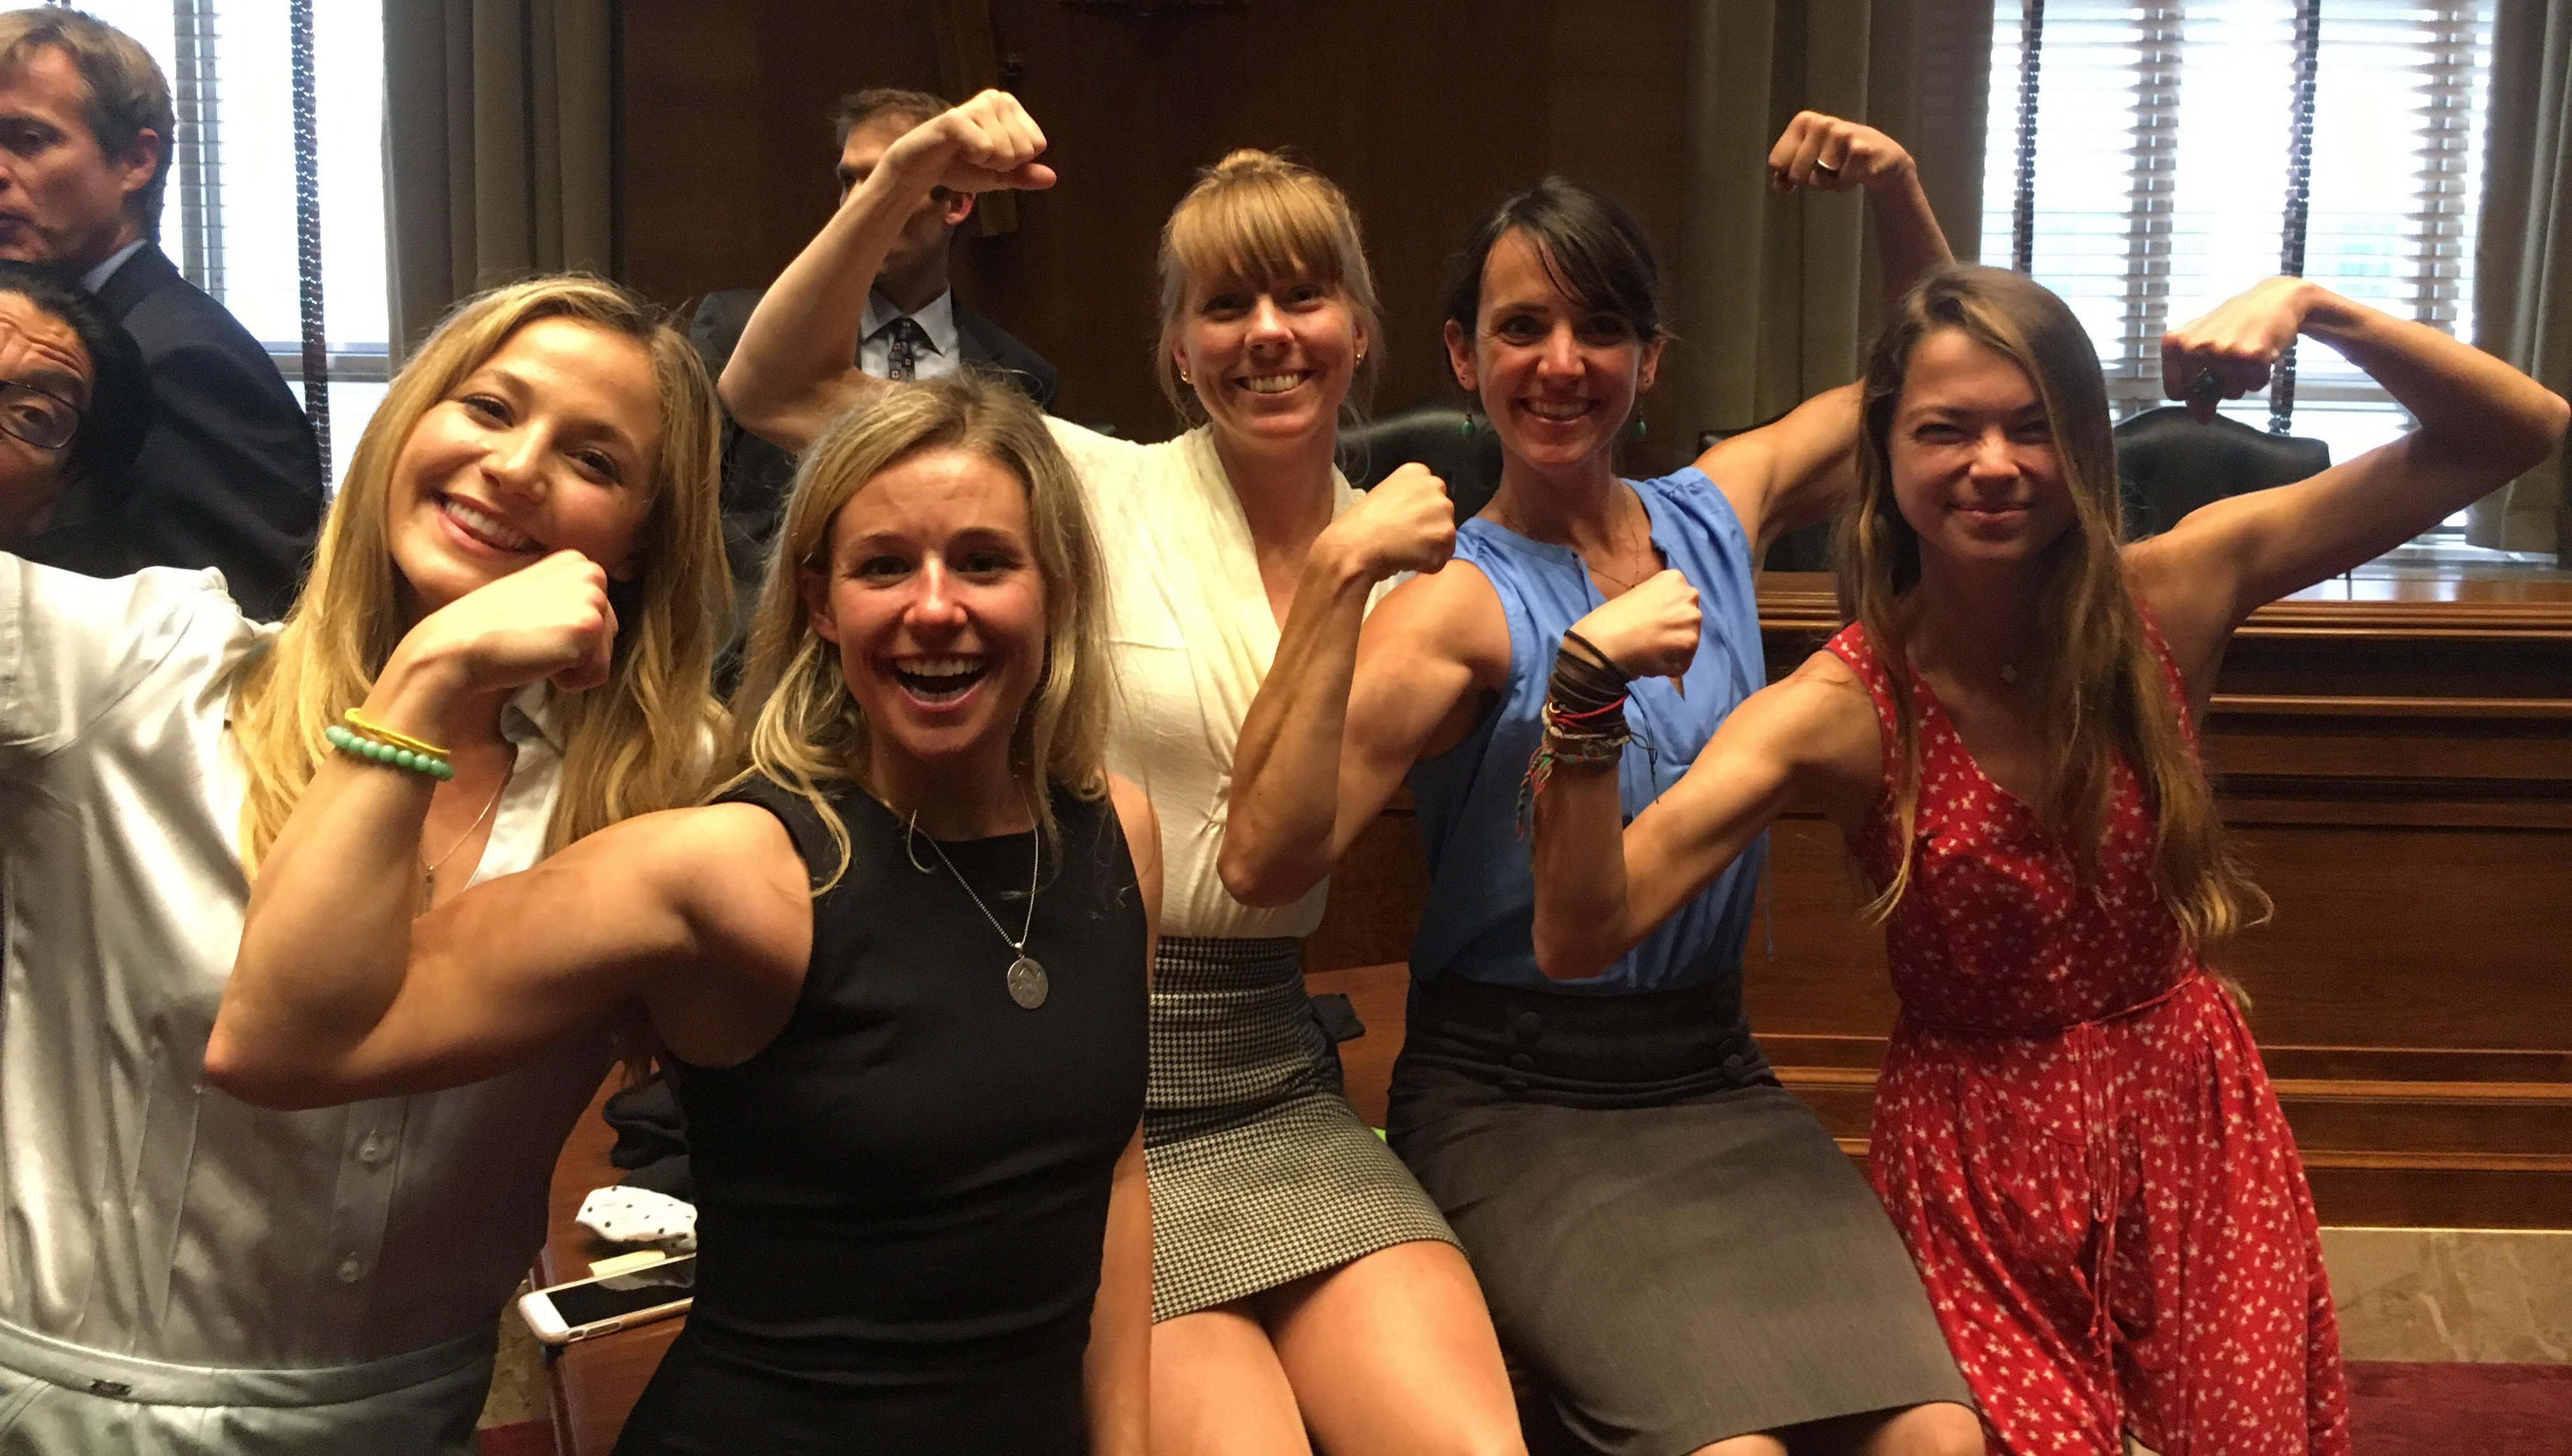 Female climbing representatives display their power after a successful day on Capitol Hill. From left to right are Sasha DiGiulian, Caroline Gleich, Libby Sauter, Quinn Brett and Katie Boue. [Photo] Derek Franz